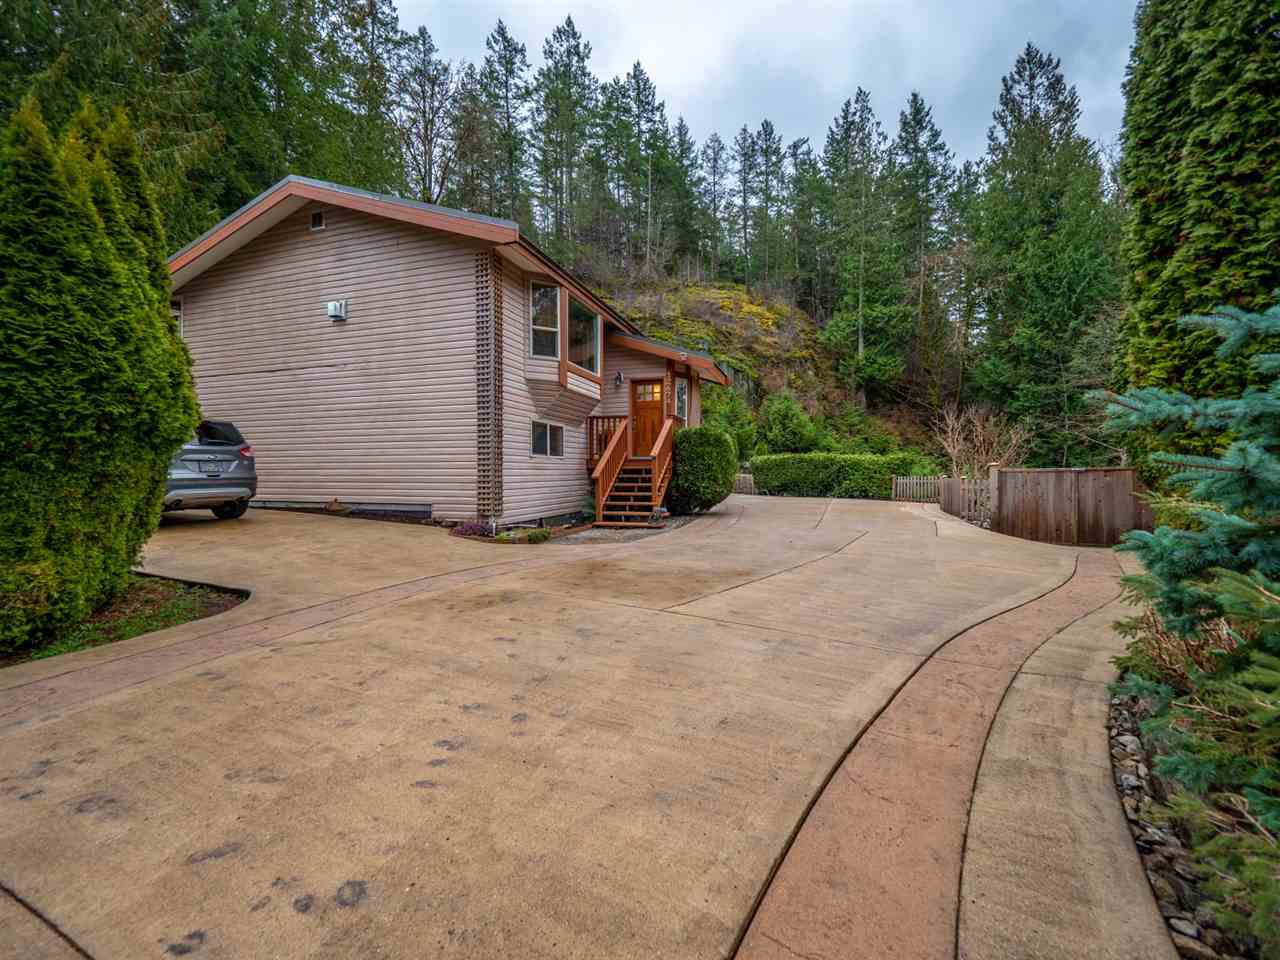 Photo 20: Photos: 12674 MERRILL Crescent in Pender Harbour: Pender Harbour Egmont House for sale (Sunshine Coast)  : MLS®# R2337589